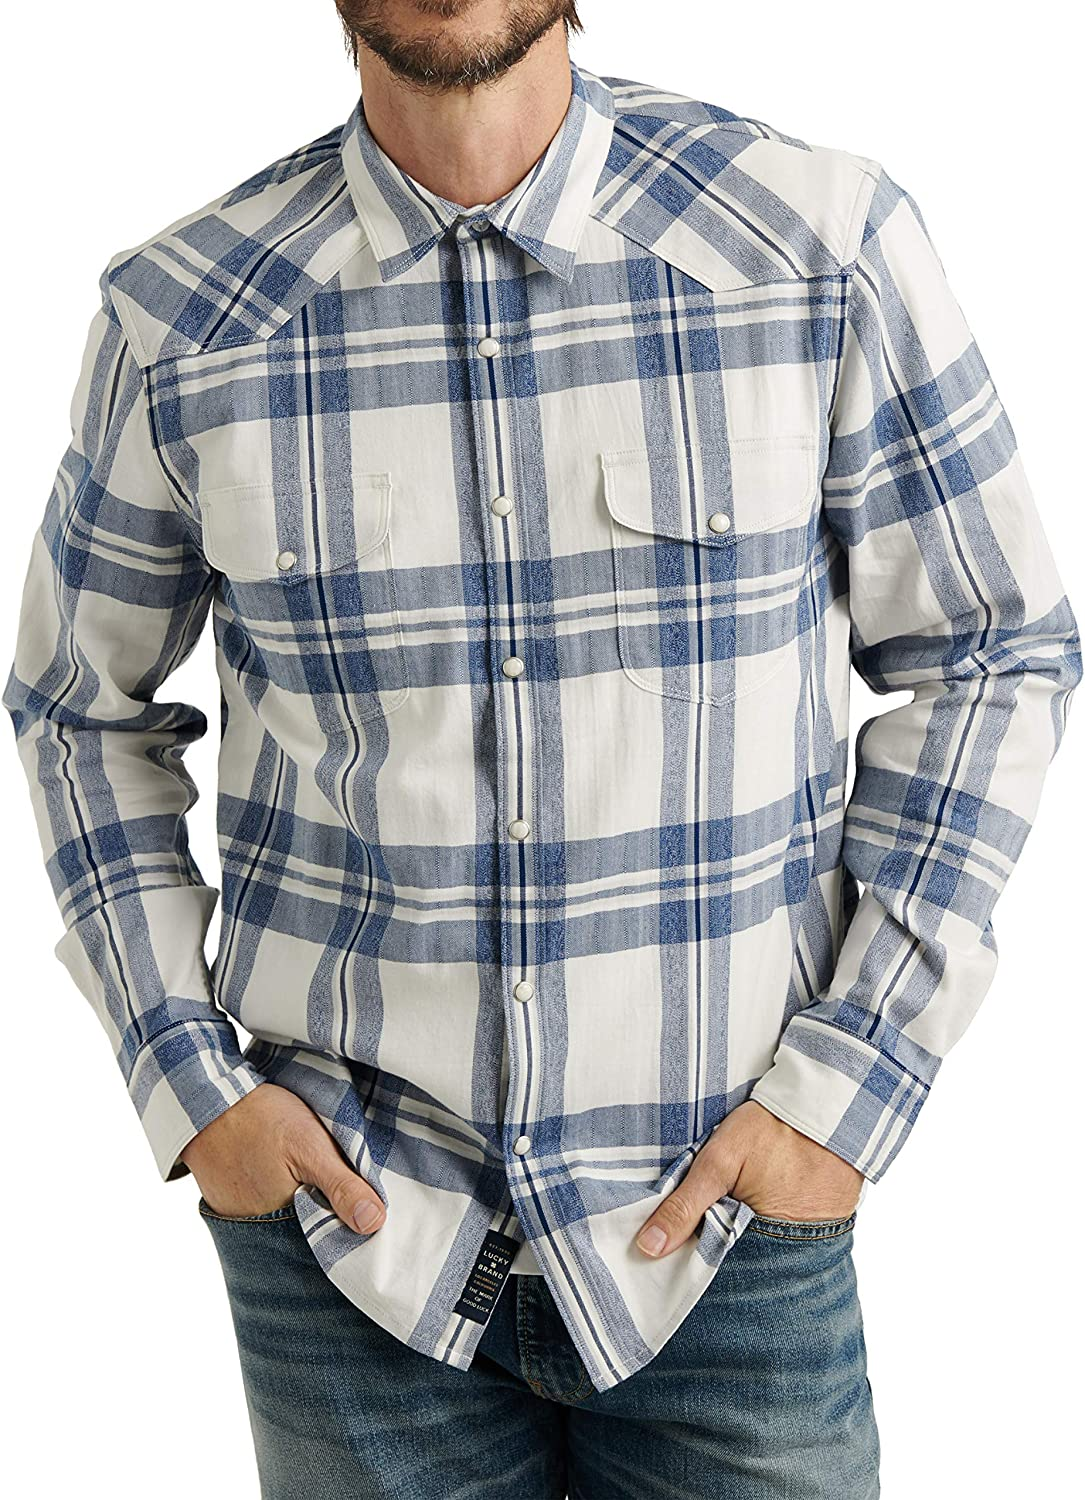 1920s Men's Dress Shirts, Casual Shirts Lucky Brand Mens Long Sleeve Button Up Two Pocket Santa Fe Western Shirt $33.16 AT vintagedancer.com